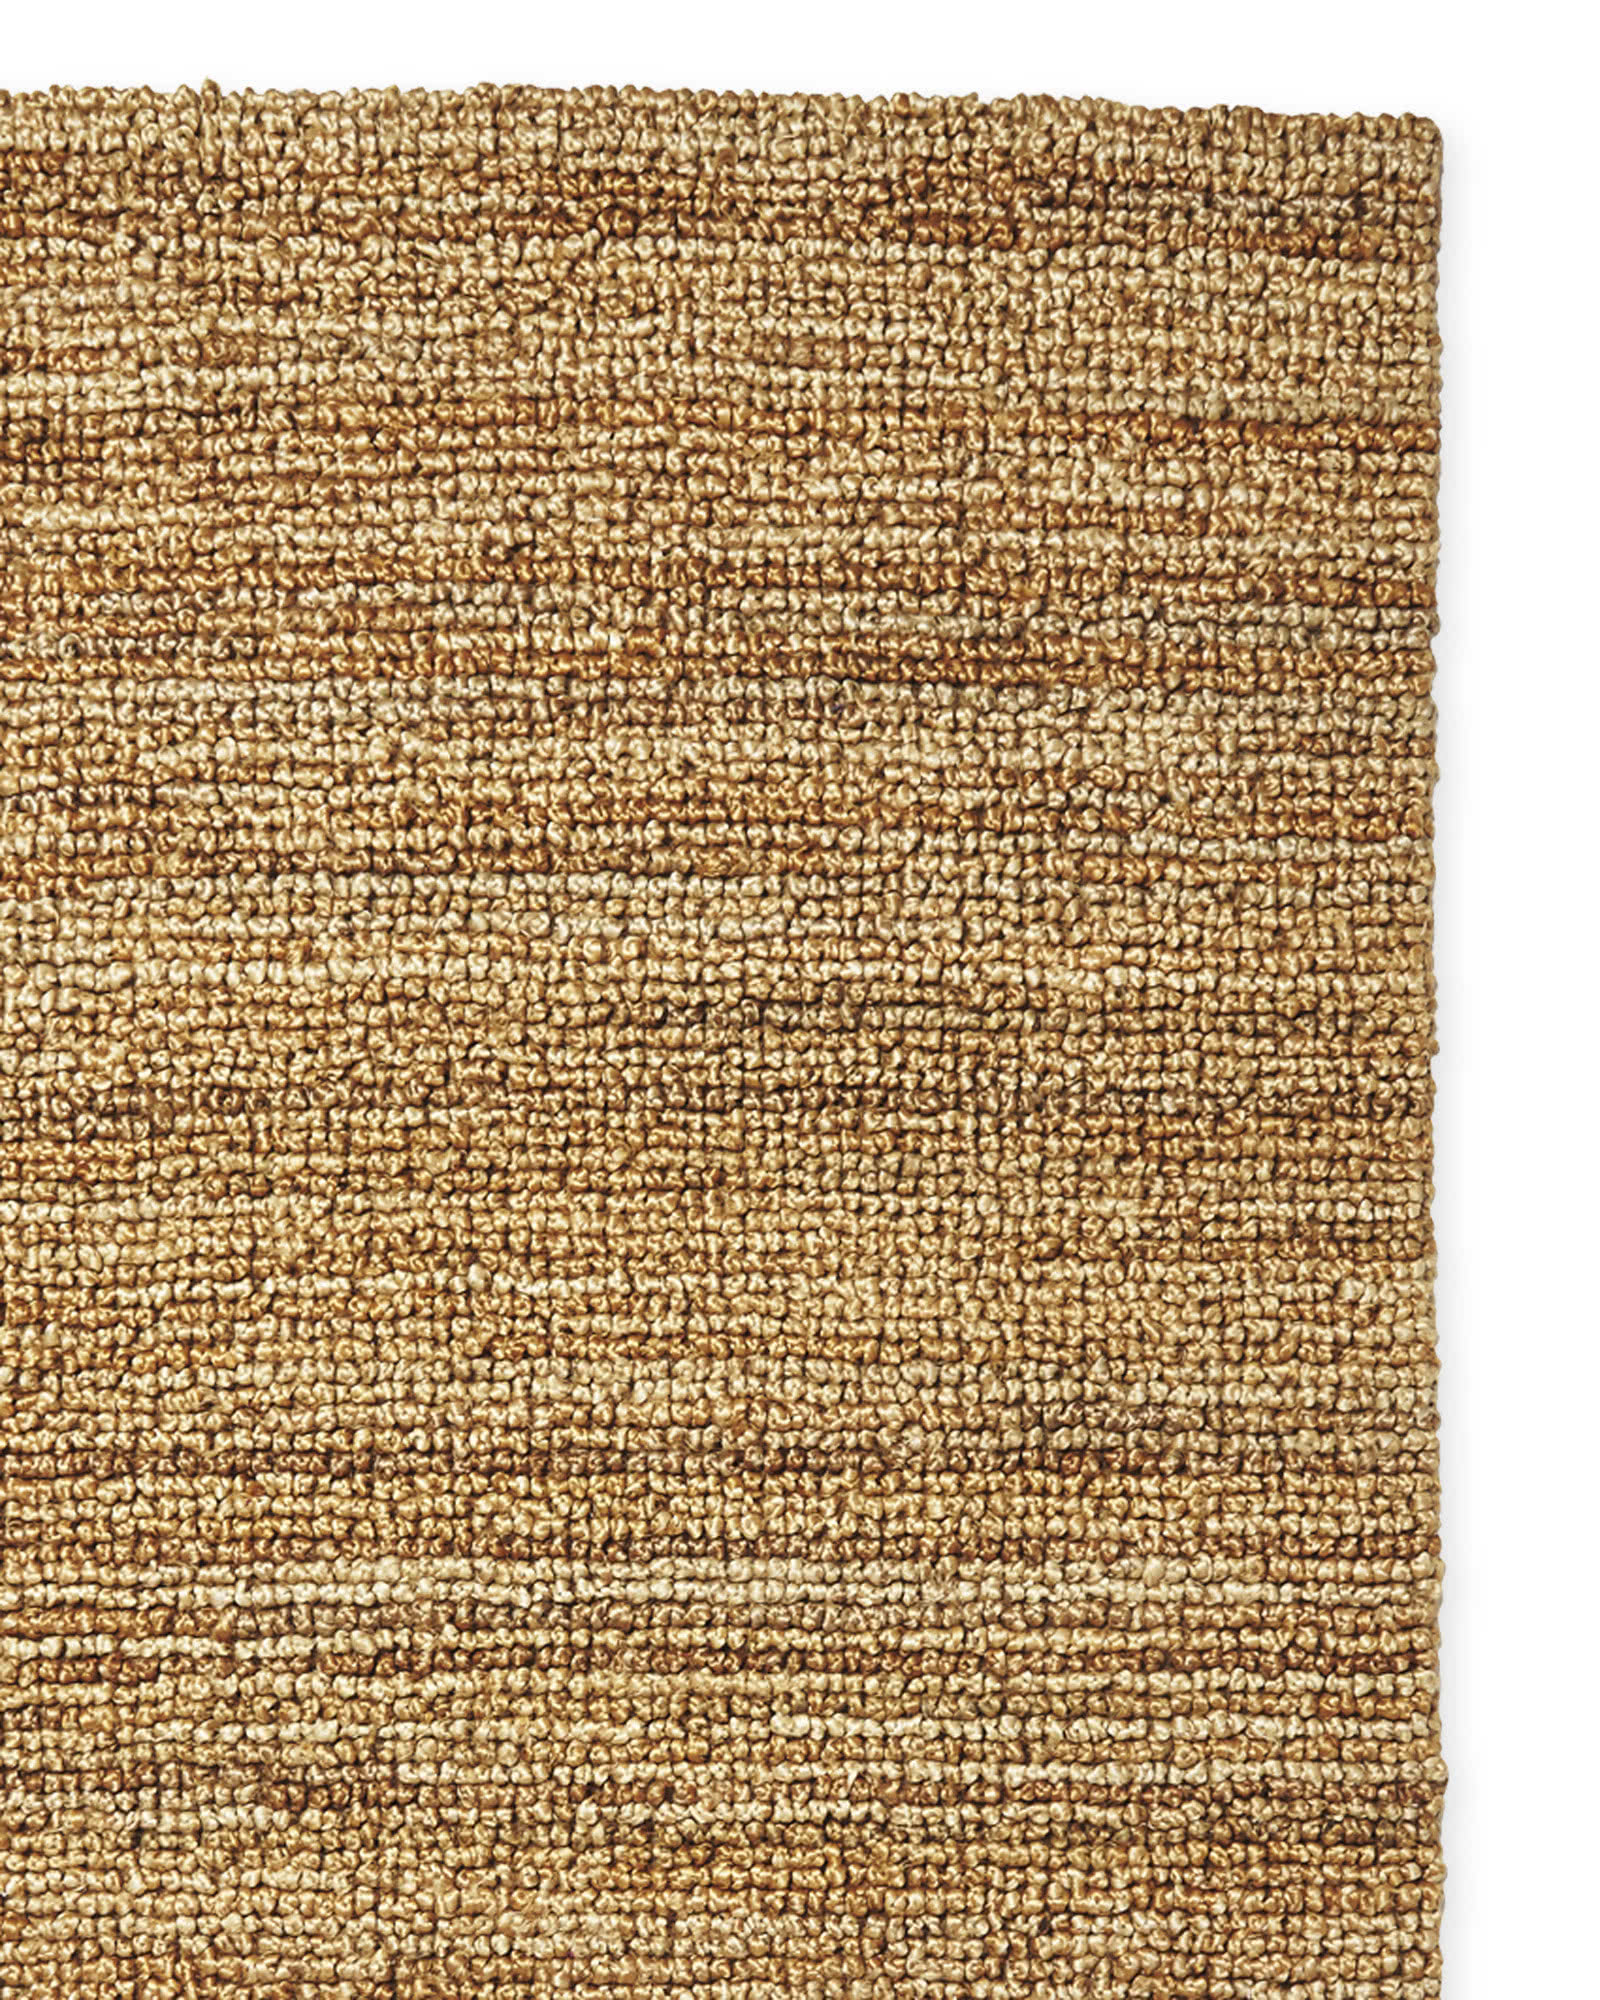 Textured Jute Rug Swatch Serena Amp Lily